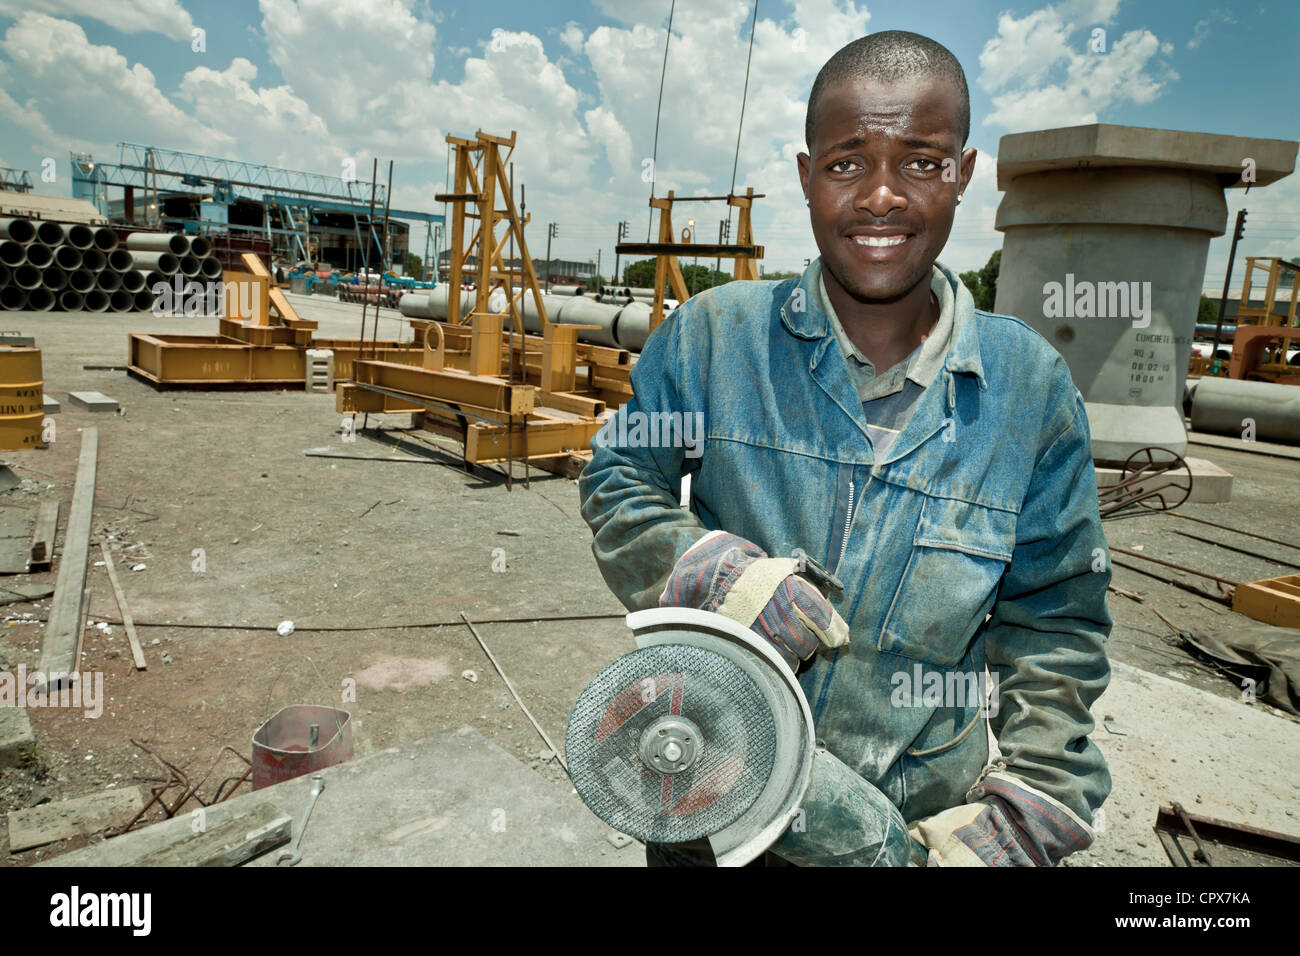 Black construction worker holds an angle-grinder and smiles at camera - Stock Image